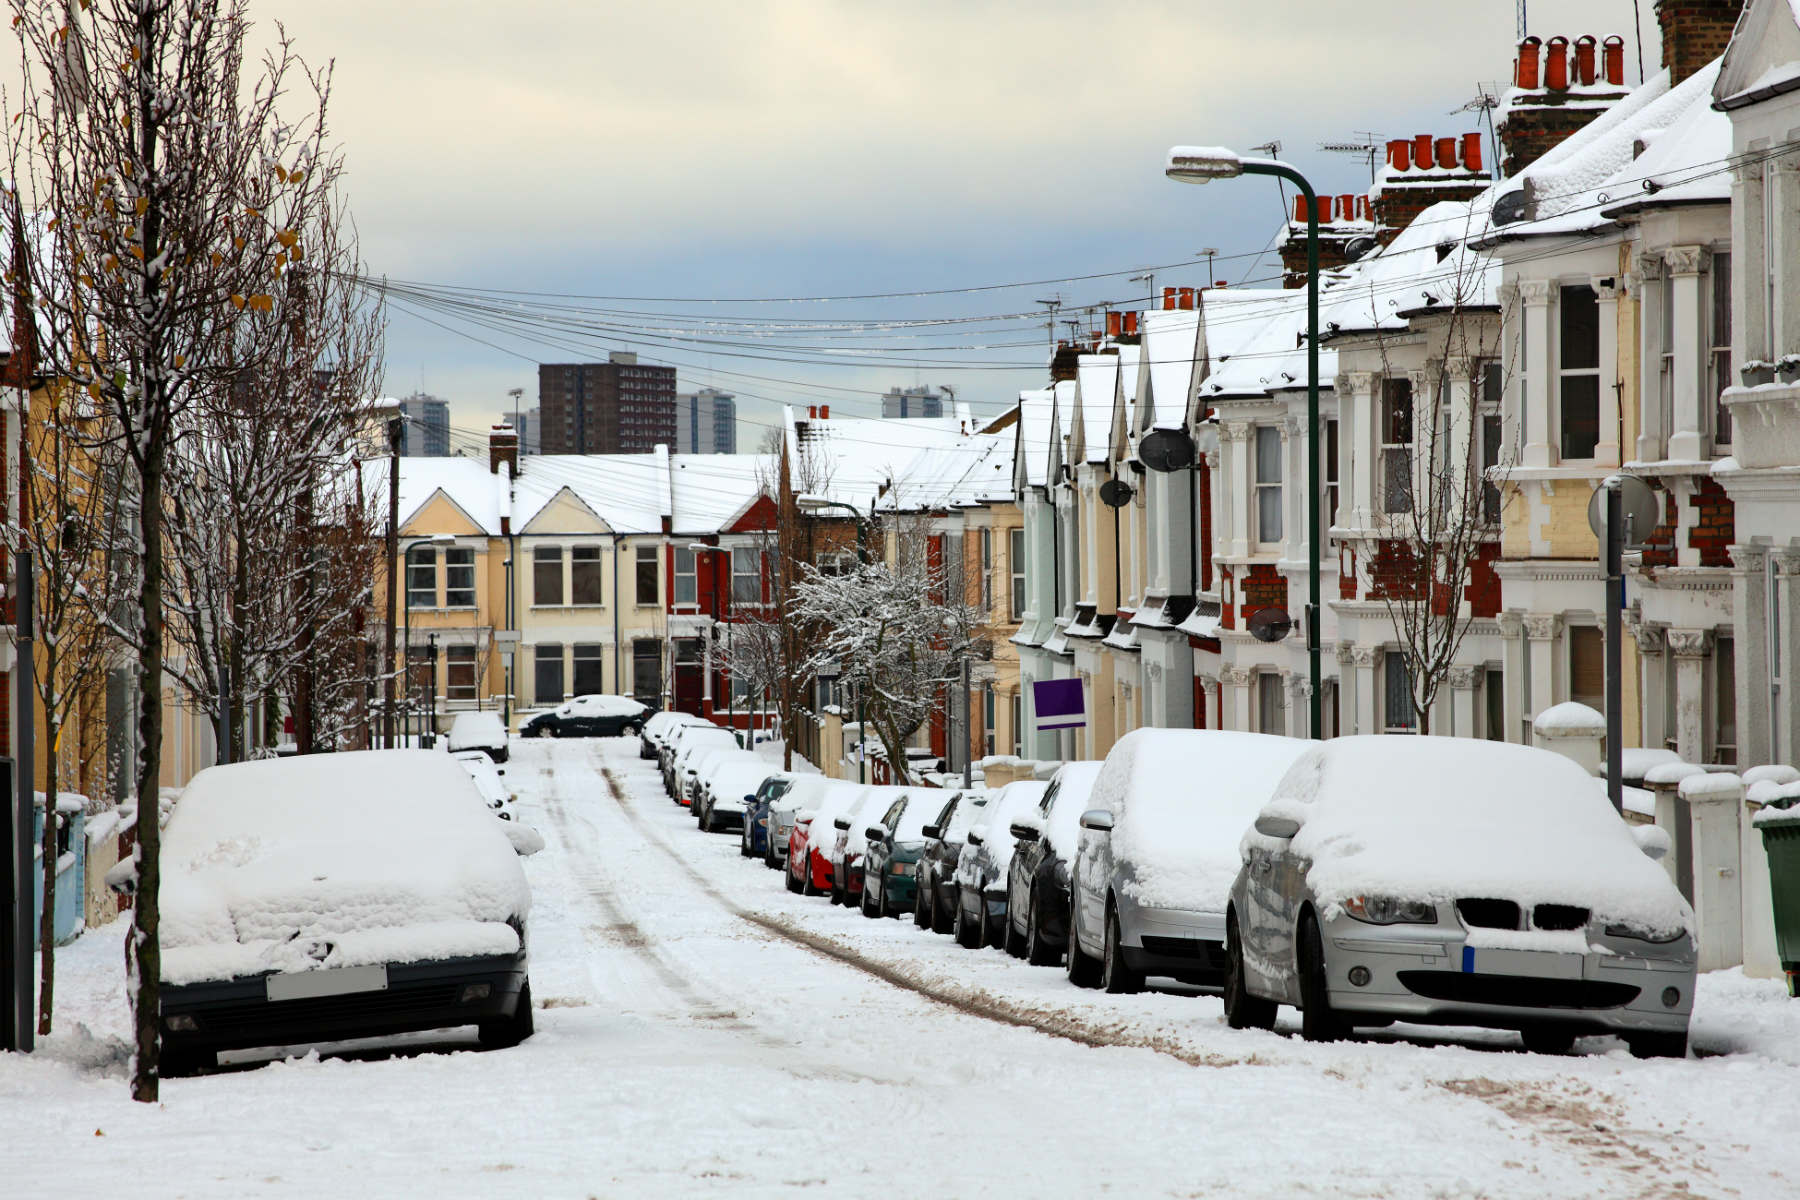 Festive 'frantic Friday' predicted as 20 million Christmas trips planned